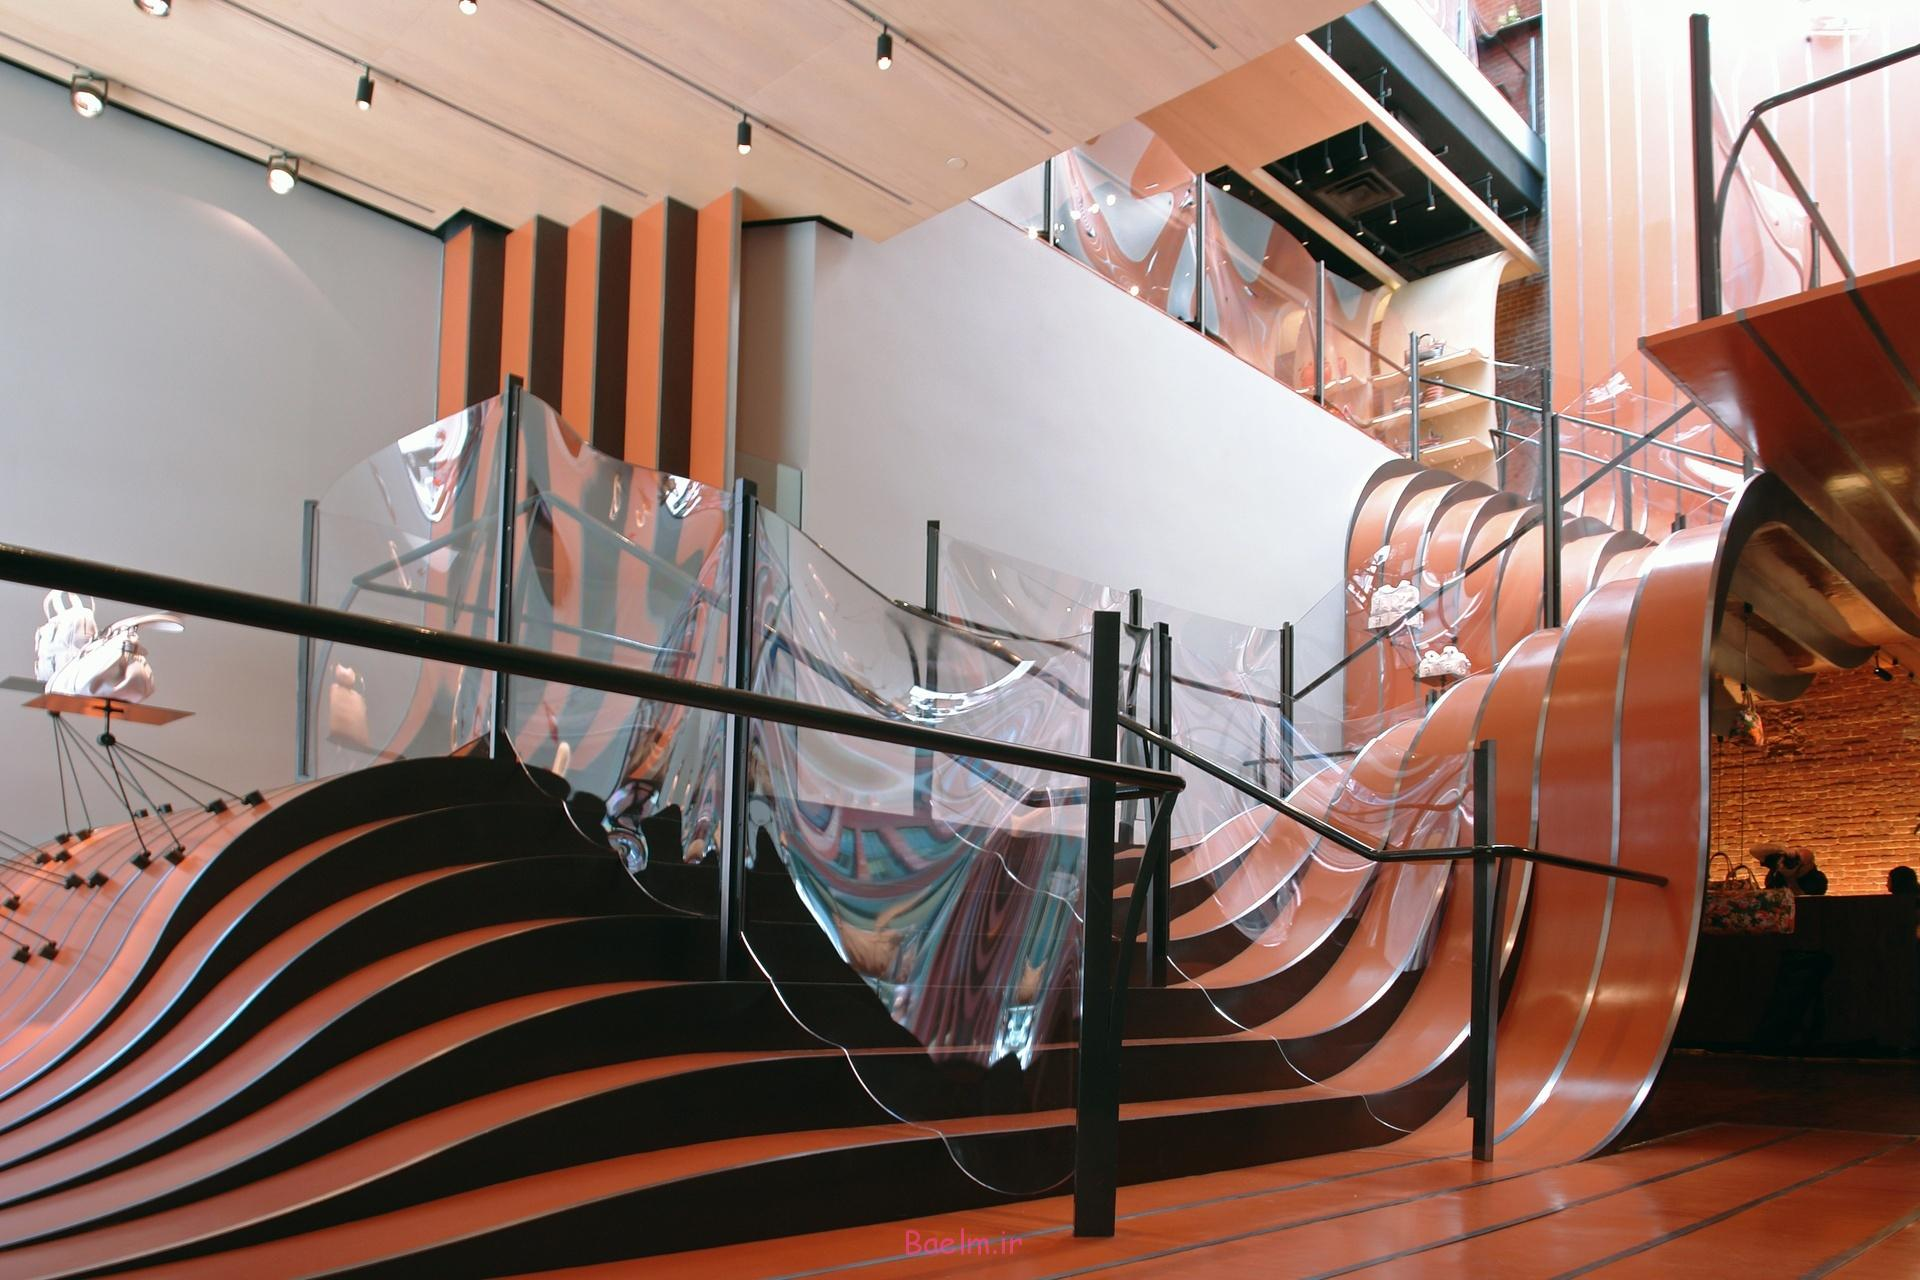 unique-stairs-longchamp-store-unique-stairs-landscape-at-the-longchamp-store-in-new-york-city